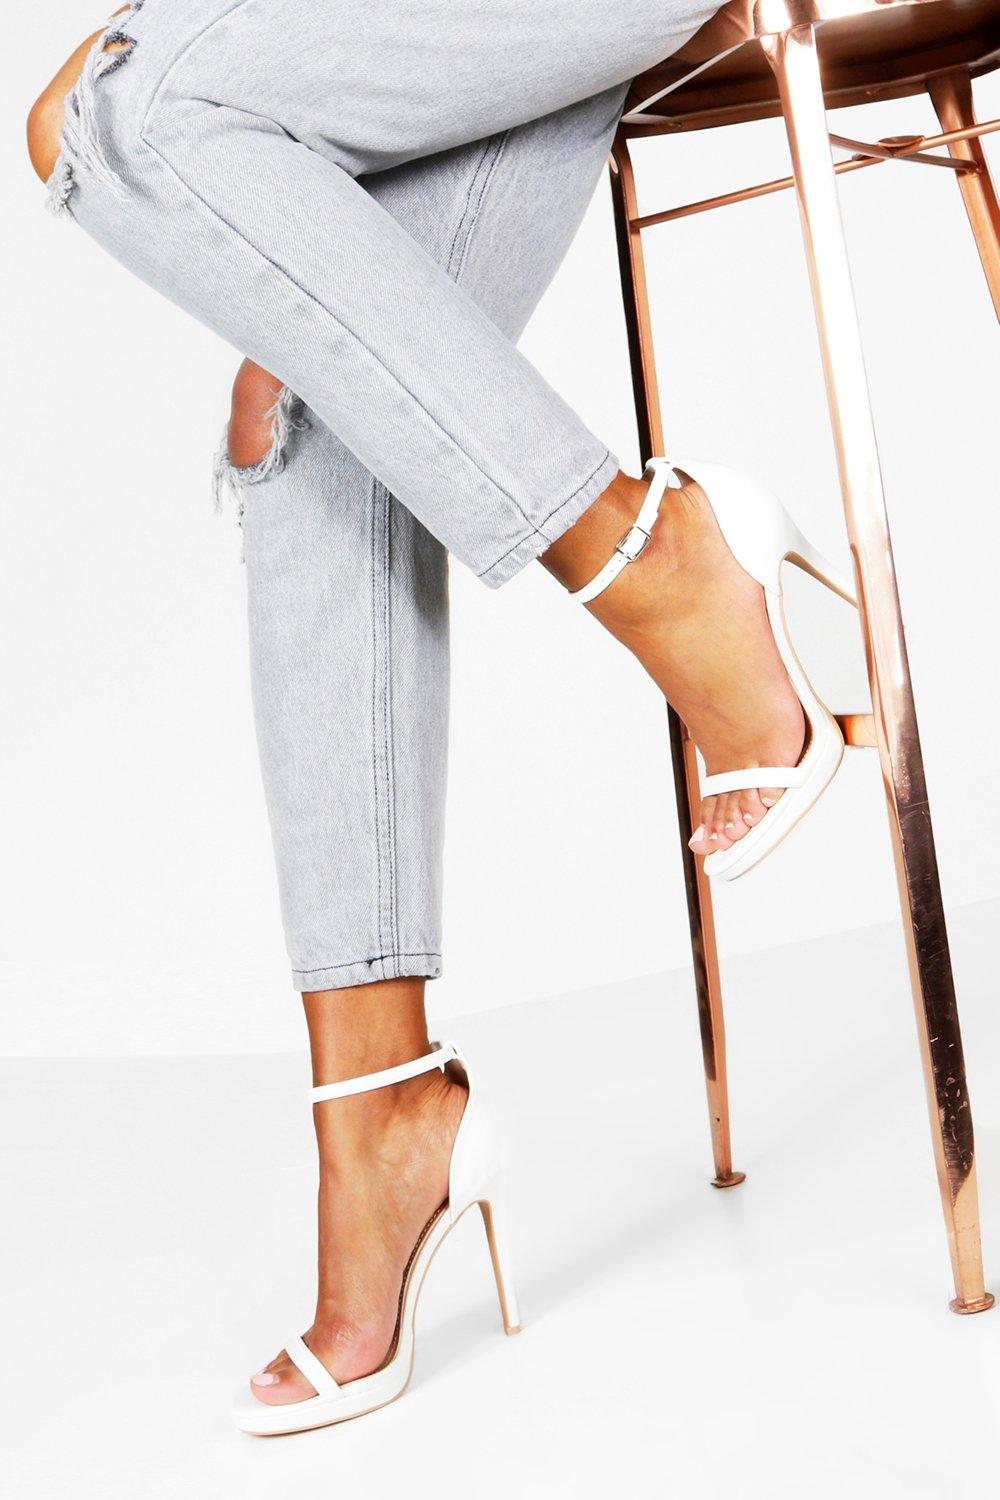 Elizabeth Single Platform Two Part Heels | Boohoo